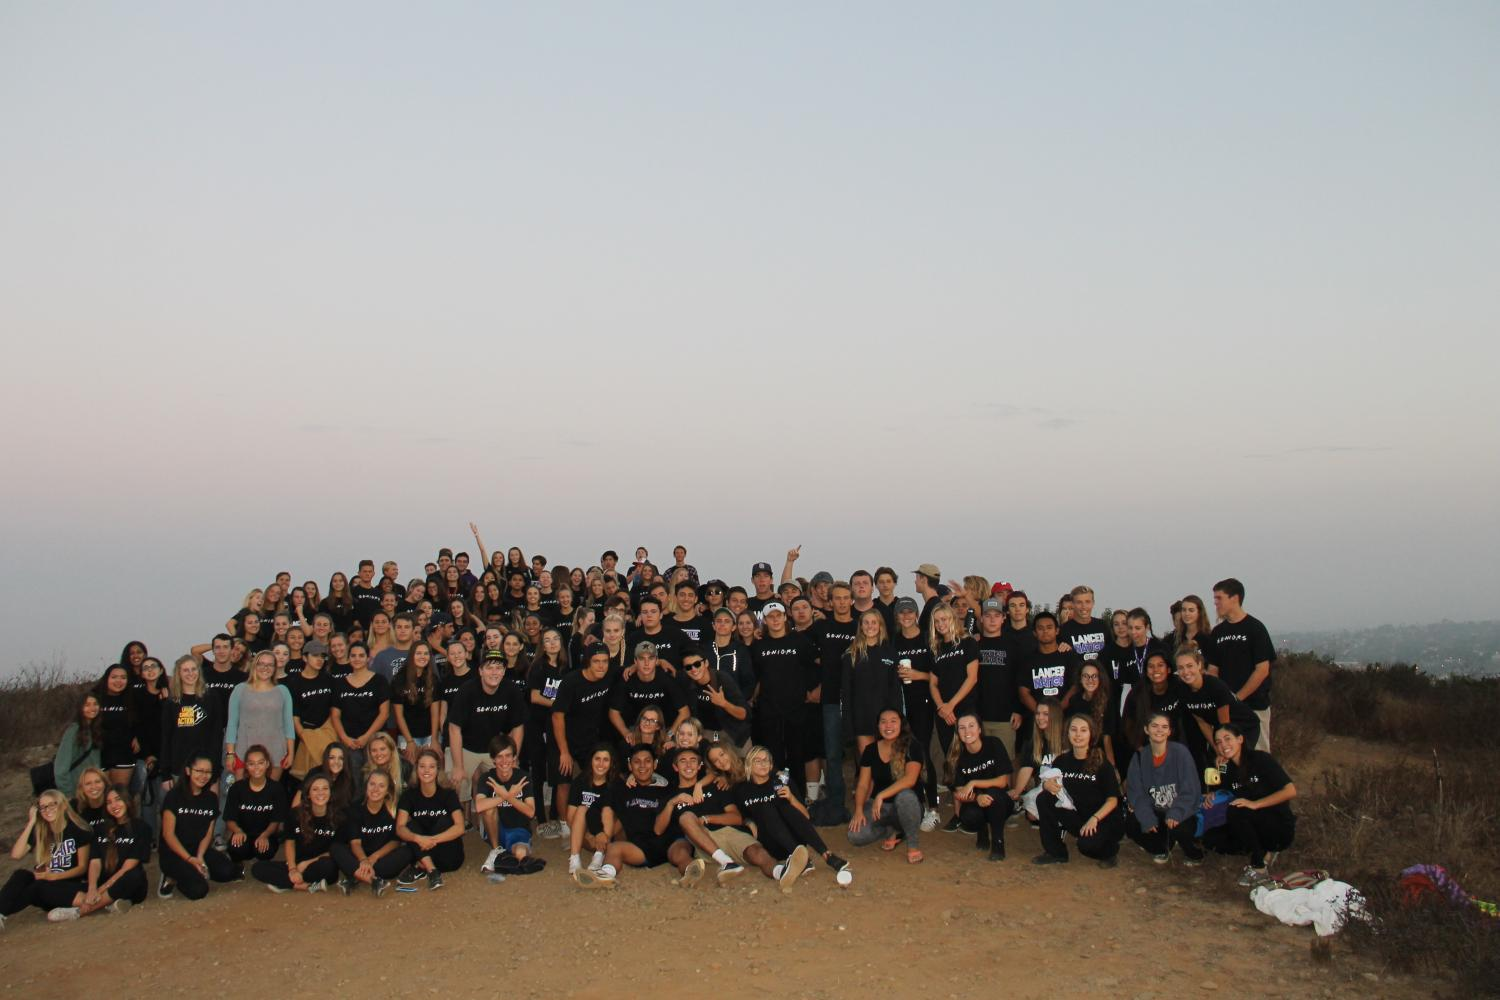 The senior class of 2018 gather at the top of Calavera Mountain to celebrate the beginning of their senior year, Sunday, Sept. 10.